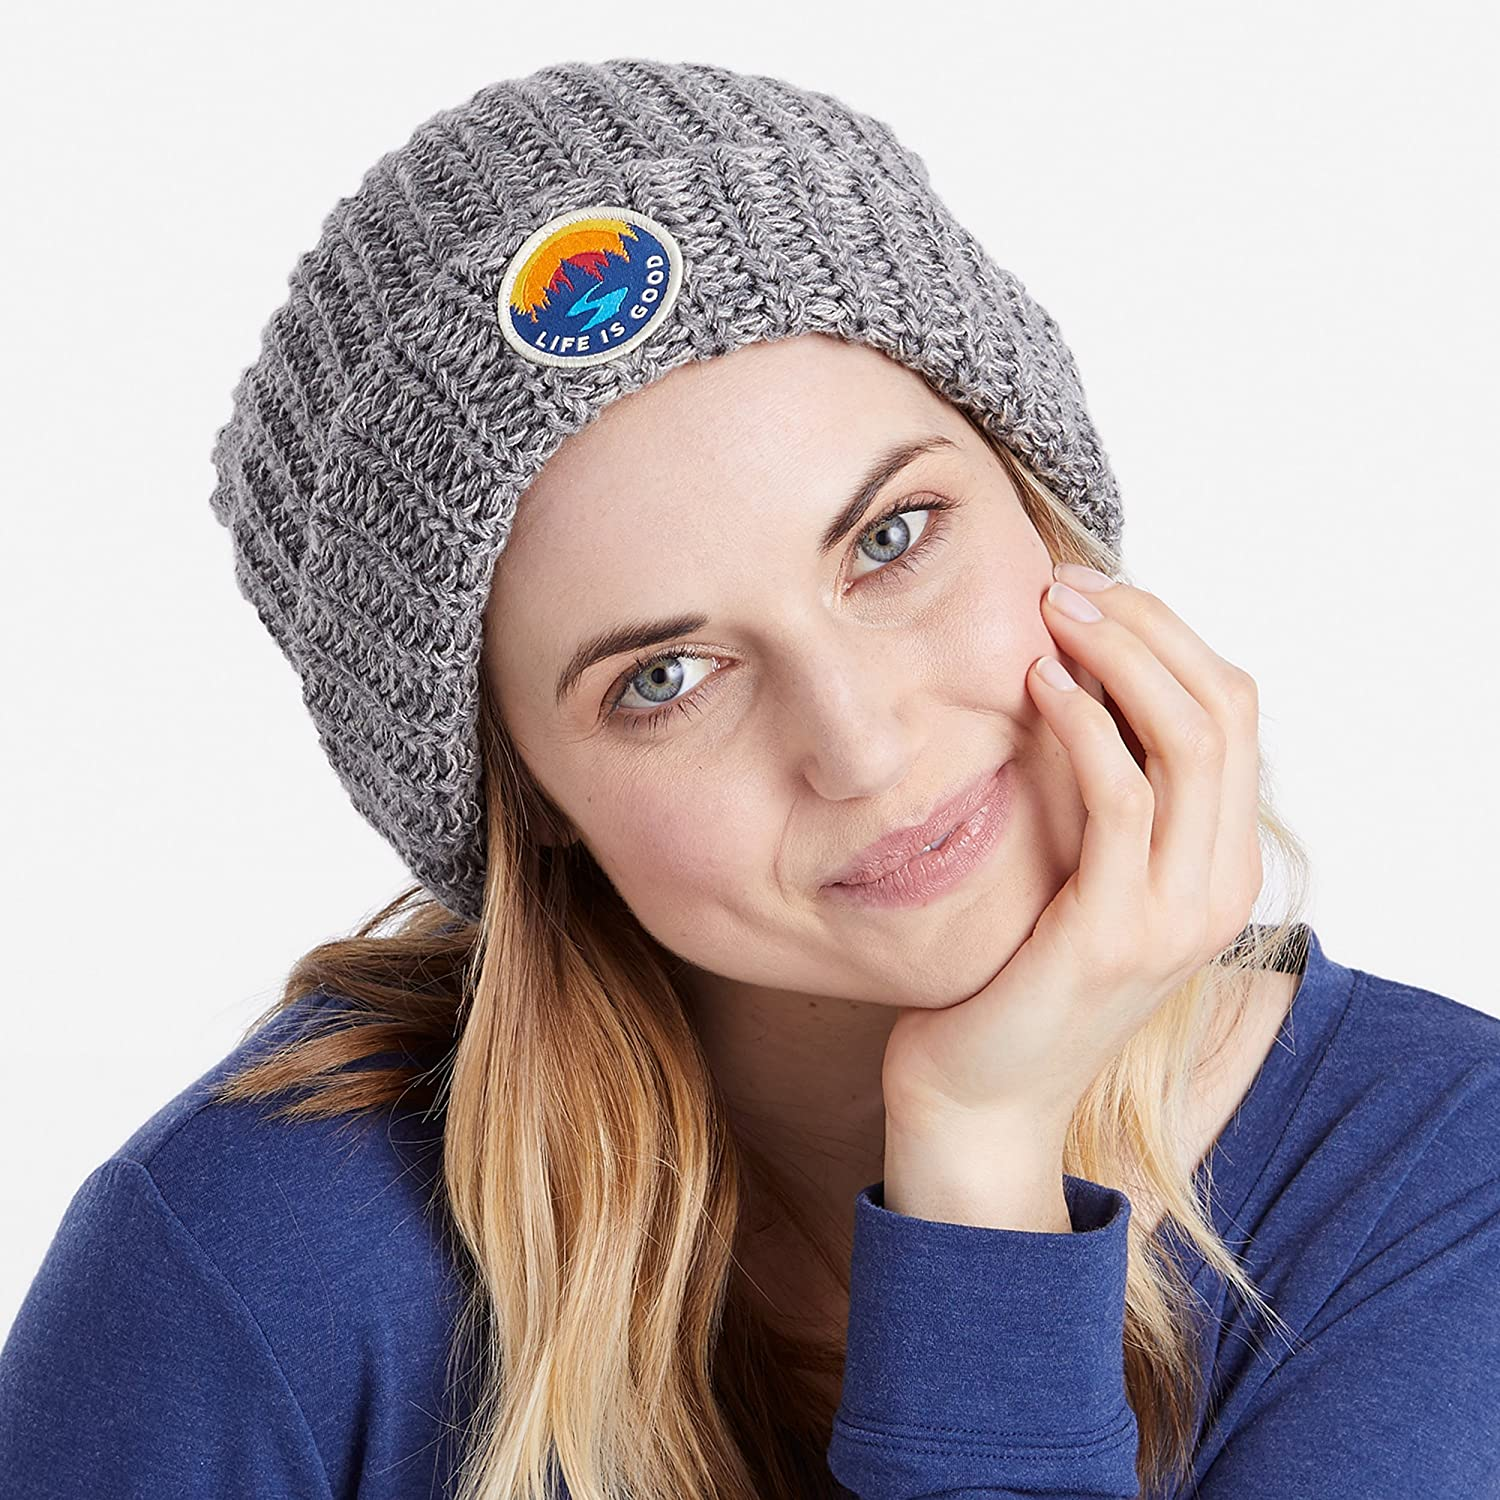 Life is Good Womens Slouchy Pom Winter Beanie Hat